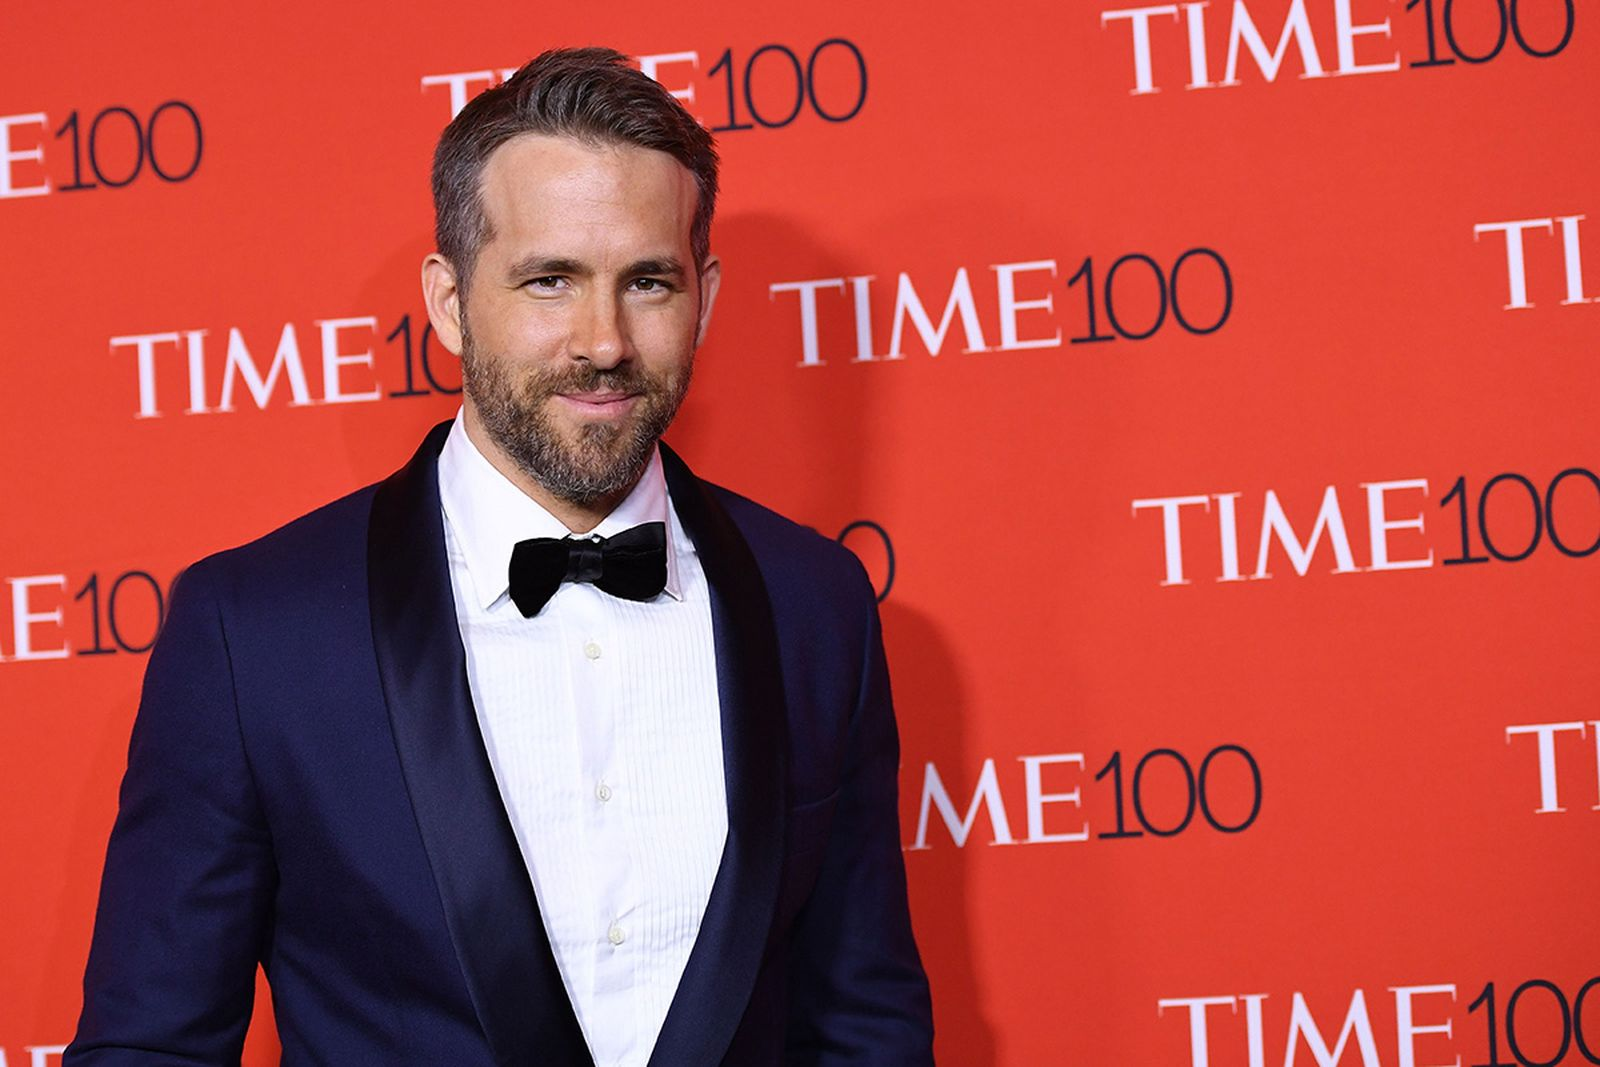 ryan reynolds producing stand alone home alone